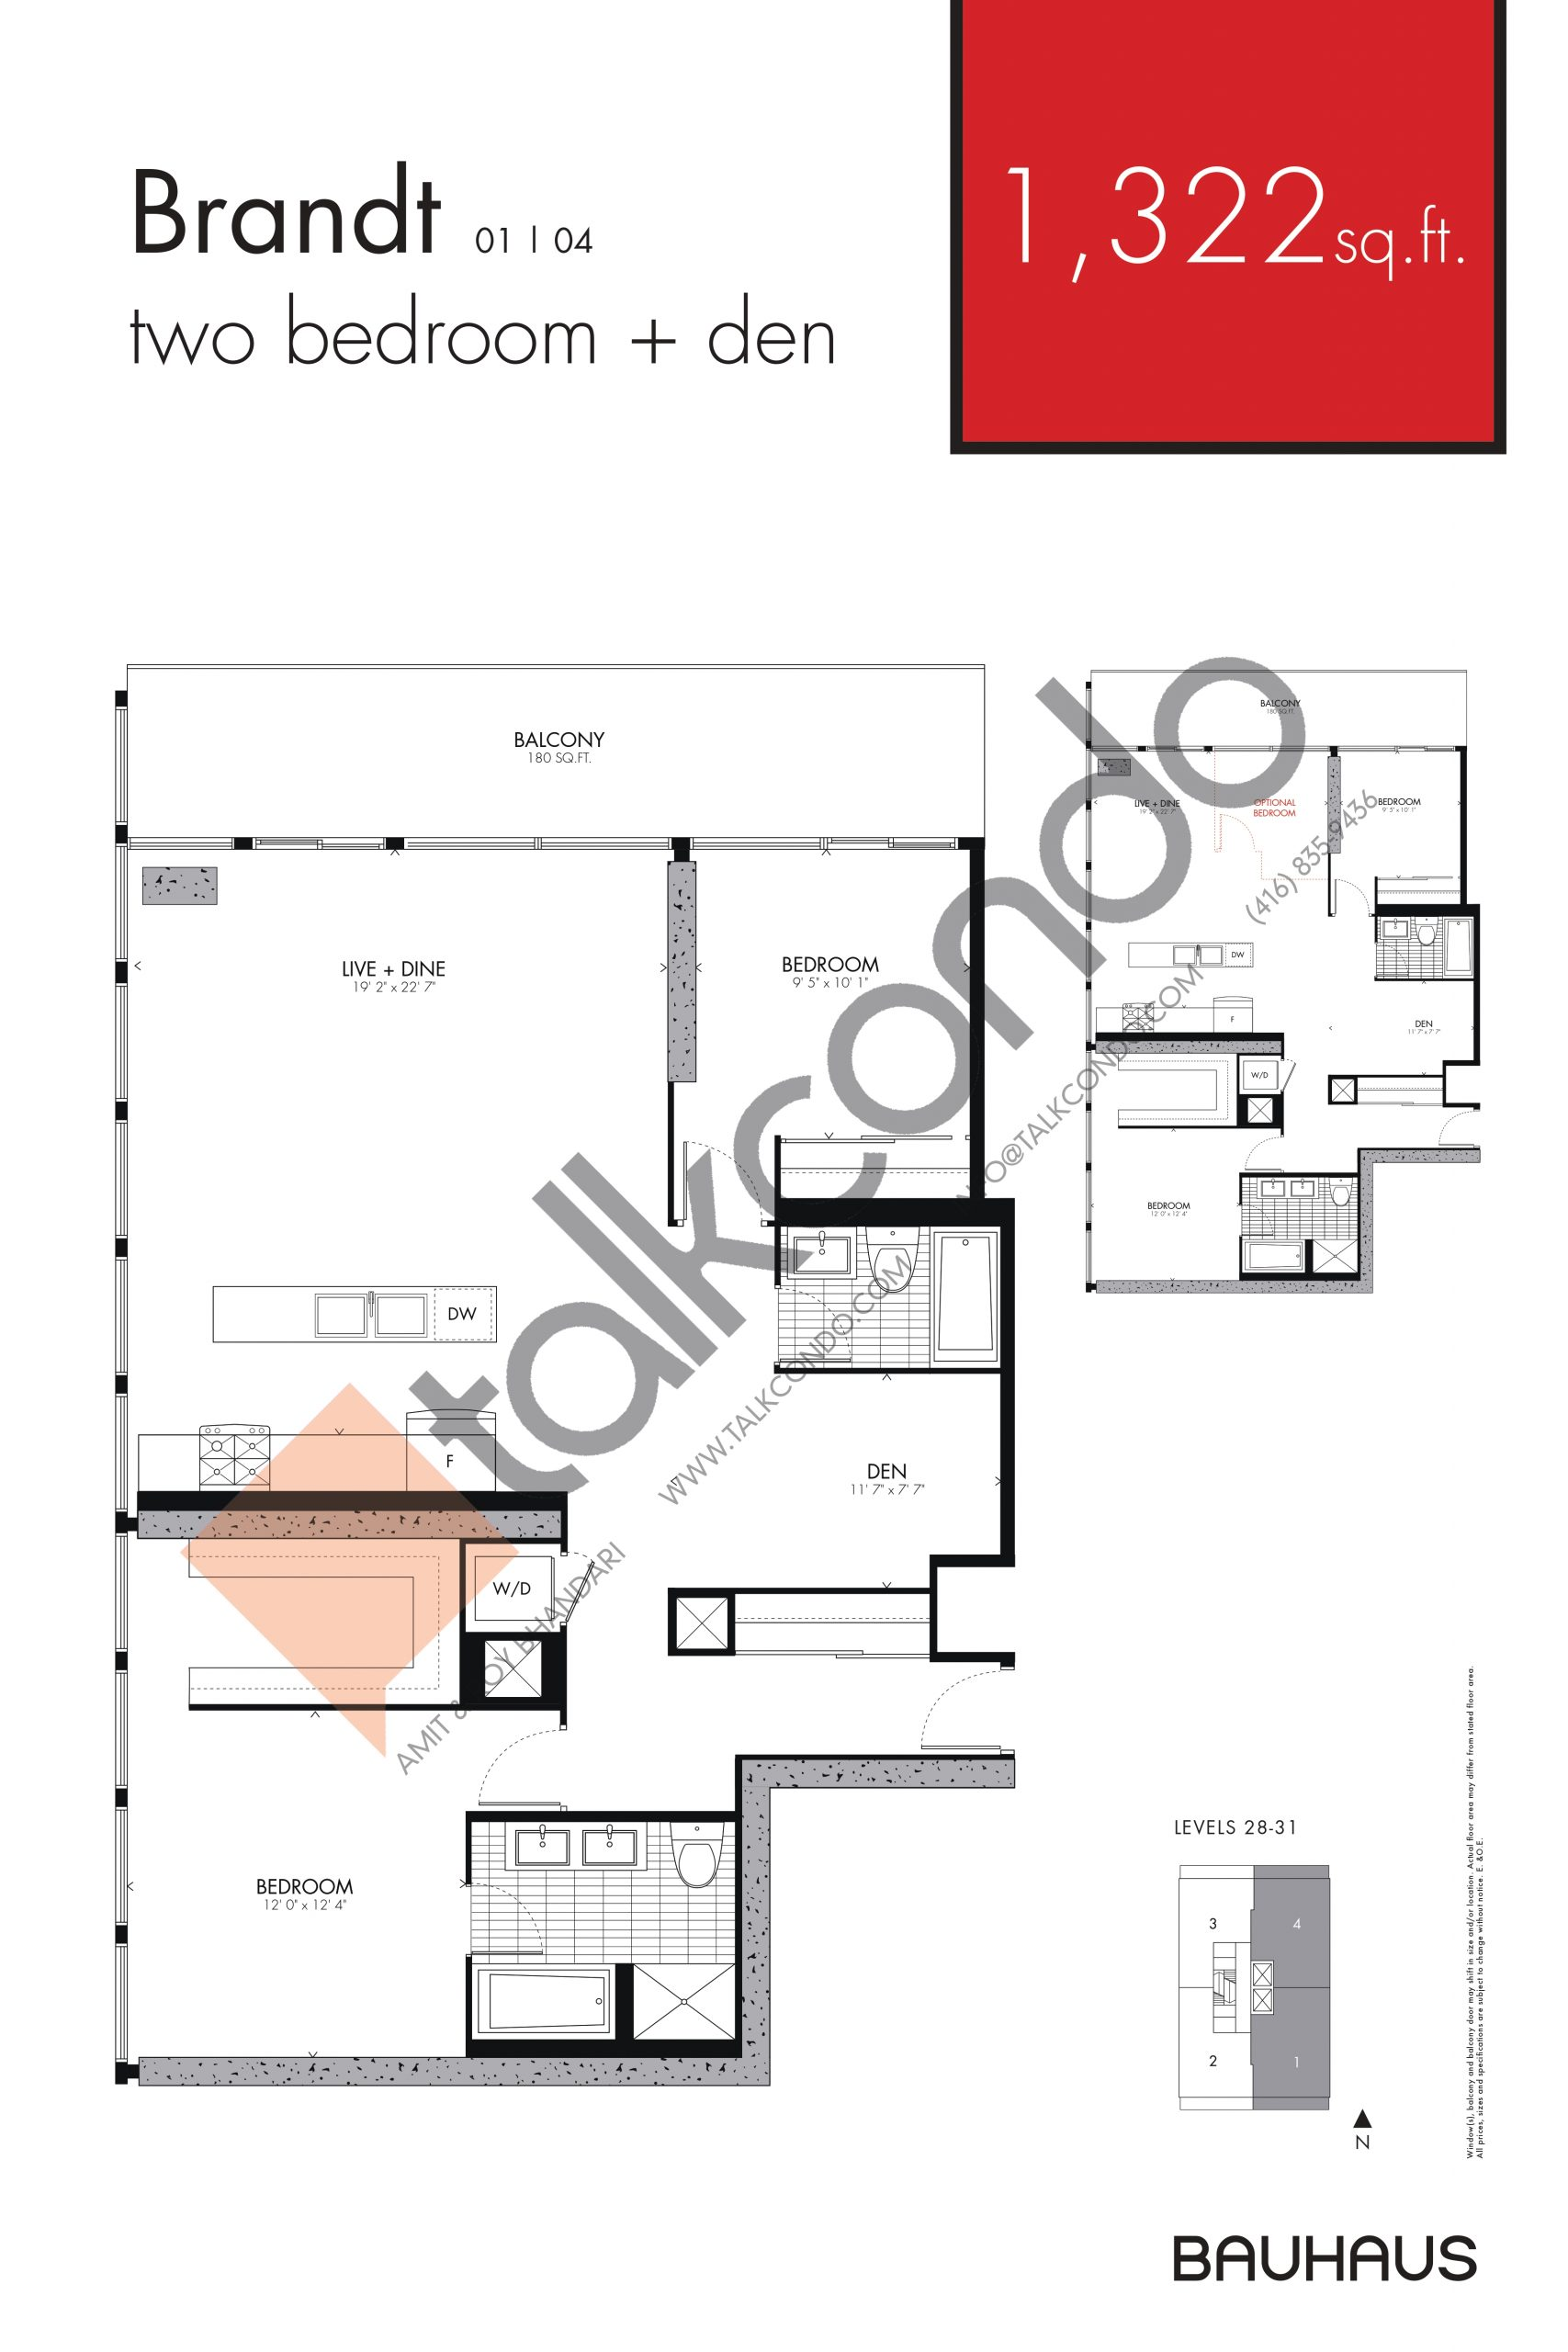 Brandt Floor Plan at Bauhaus Condos - 1322 sq.ft